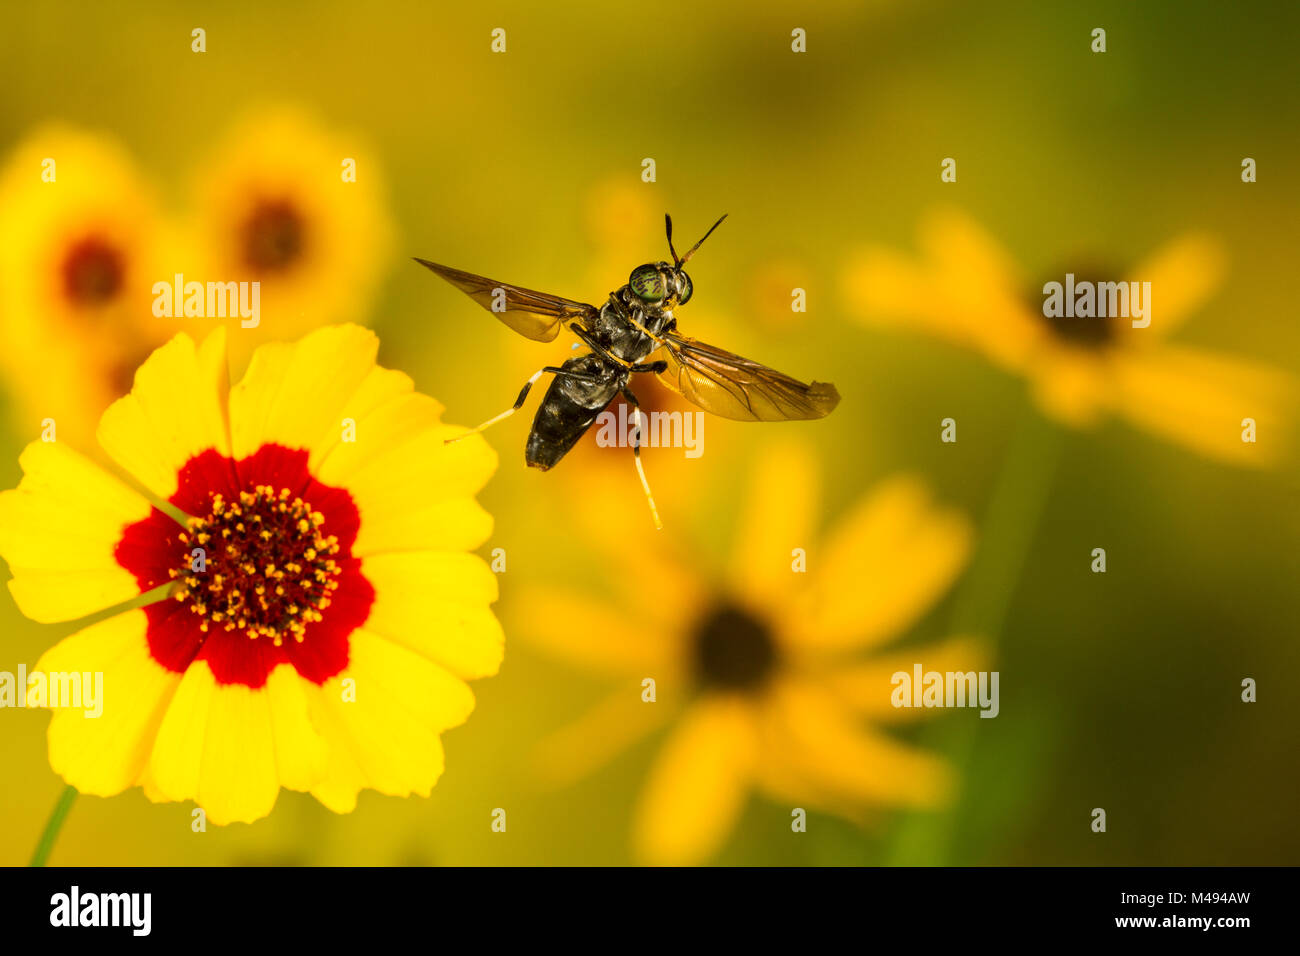 Black soldier fly (Hermetia illucens) flying from flower, Tuscaloosa County, Alabama, USA Controlled conditions. - Stock Image